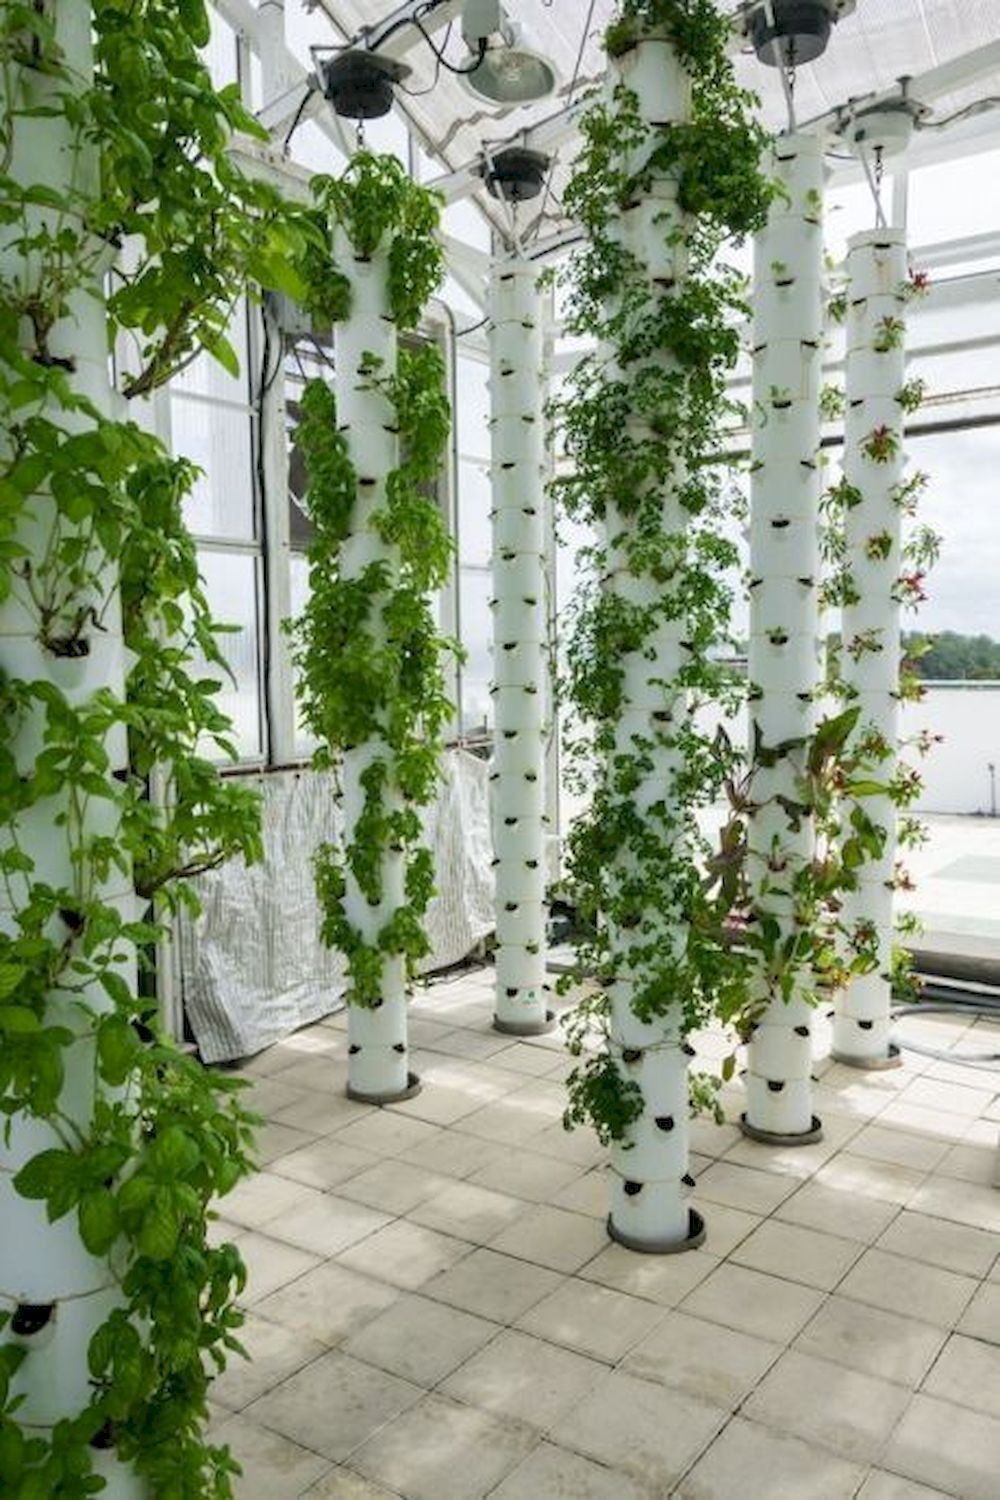 Exquisite Indoor Gardening With Hydroponics Breakthrough #moneyspells Many individuals knew nothing about hydroponics but for an agriculturist, and ev... -  Exquisite Indoor Gardening With Hydroponics Breakthrough #moneyspells Many individuals knew nothing about hydroponics but for an agriculturist, and even a gardener, hydroponic spells produce at its finest, increased yields, setting pleasant expertise, minimal labor and excessive return in funding, briefly, MONEY! ,  #Breakthrough   Informat #moneyspells